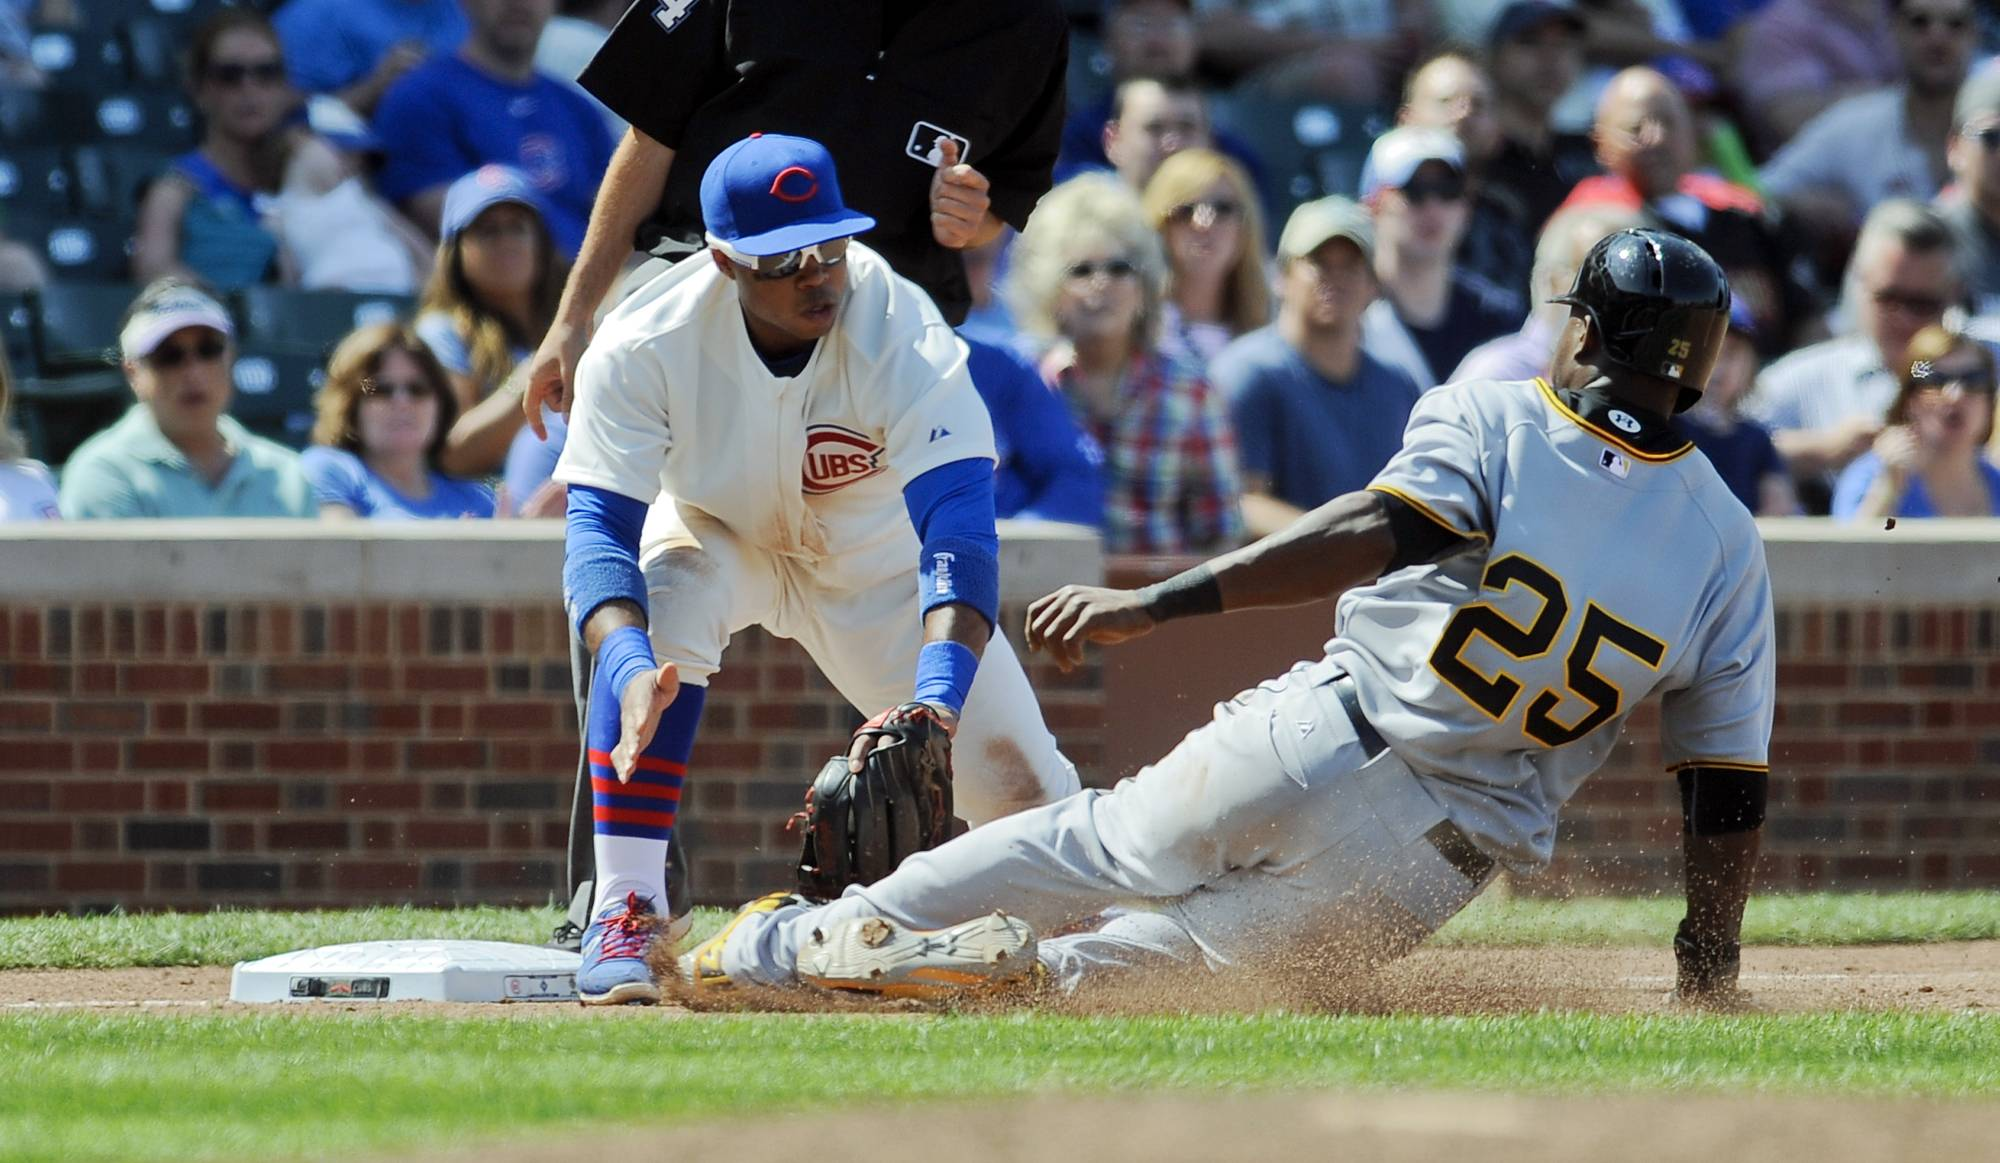 Chicago Cubs third baseman Luis Valbuena makes a tag on Pittsburgh Pirates right fielder Gregory Polanco during the eighth inning of a baseball game on Sunday, June 22, 2014, in Chicago.